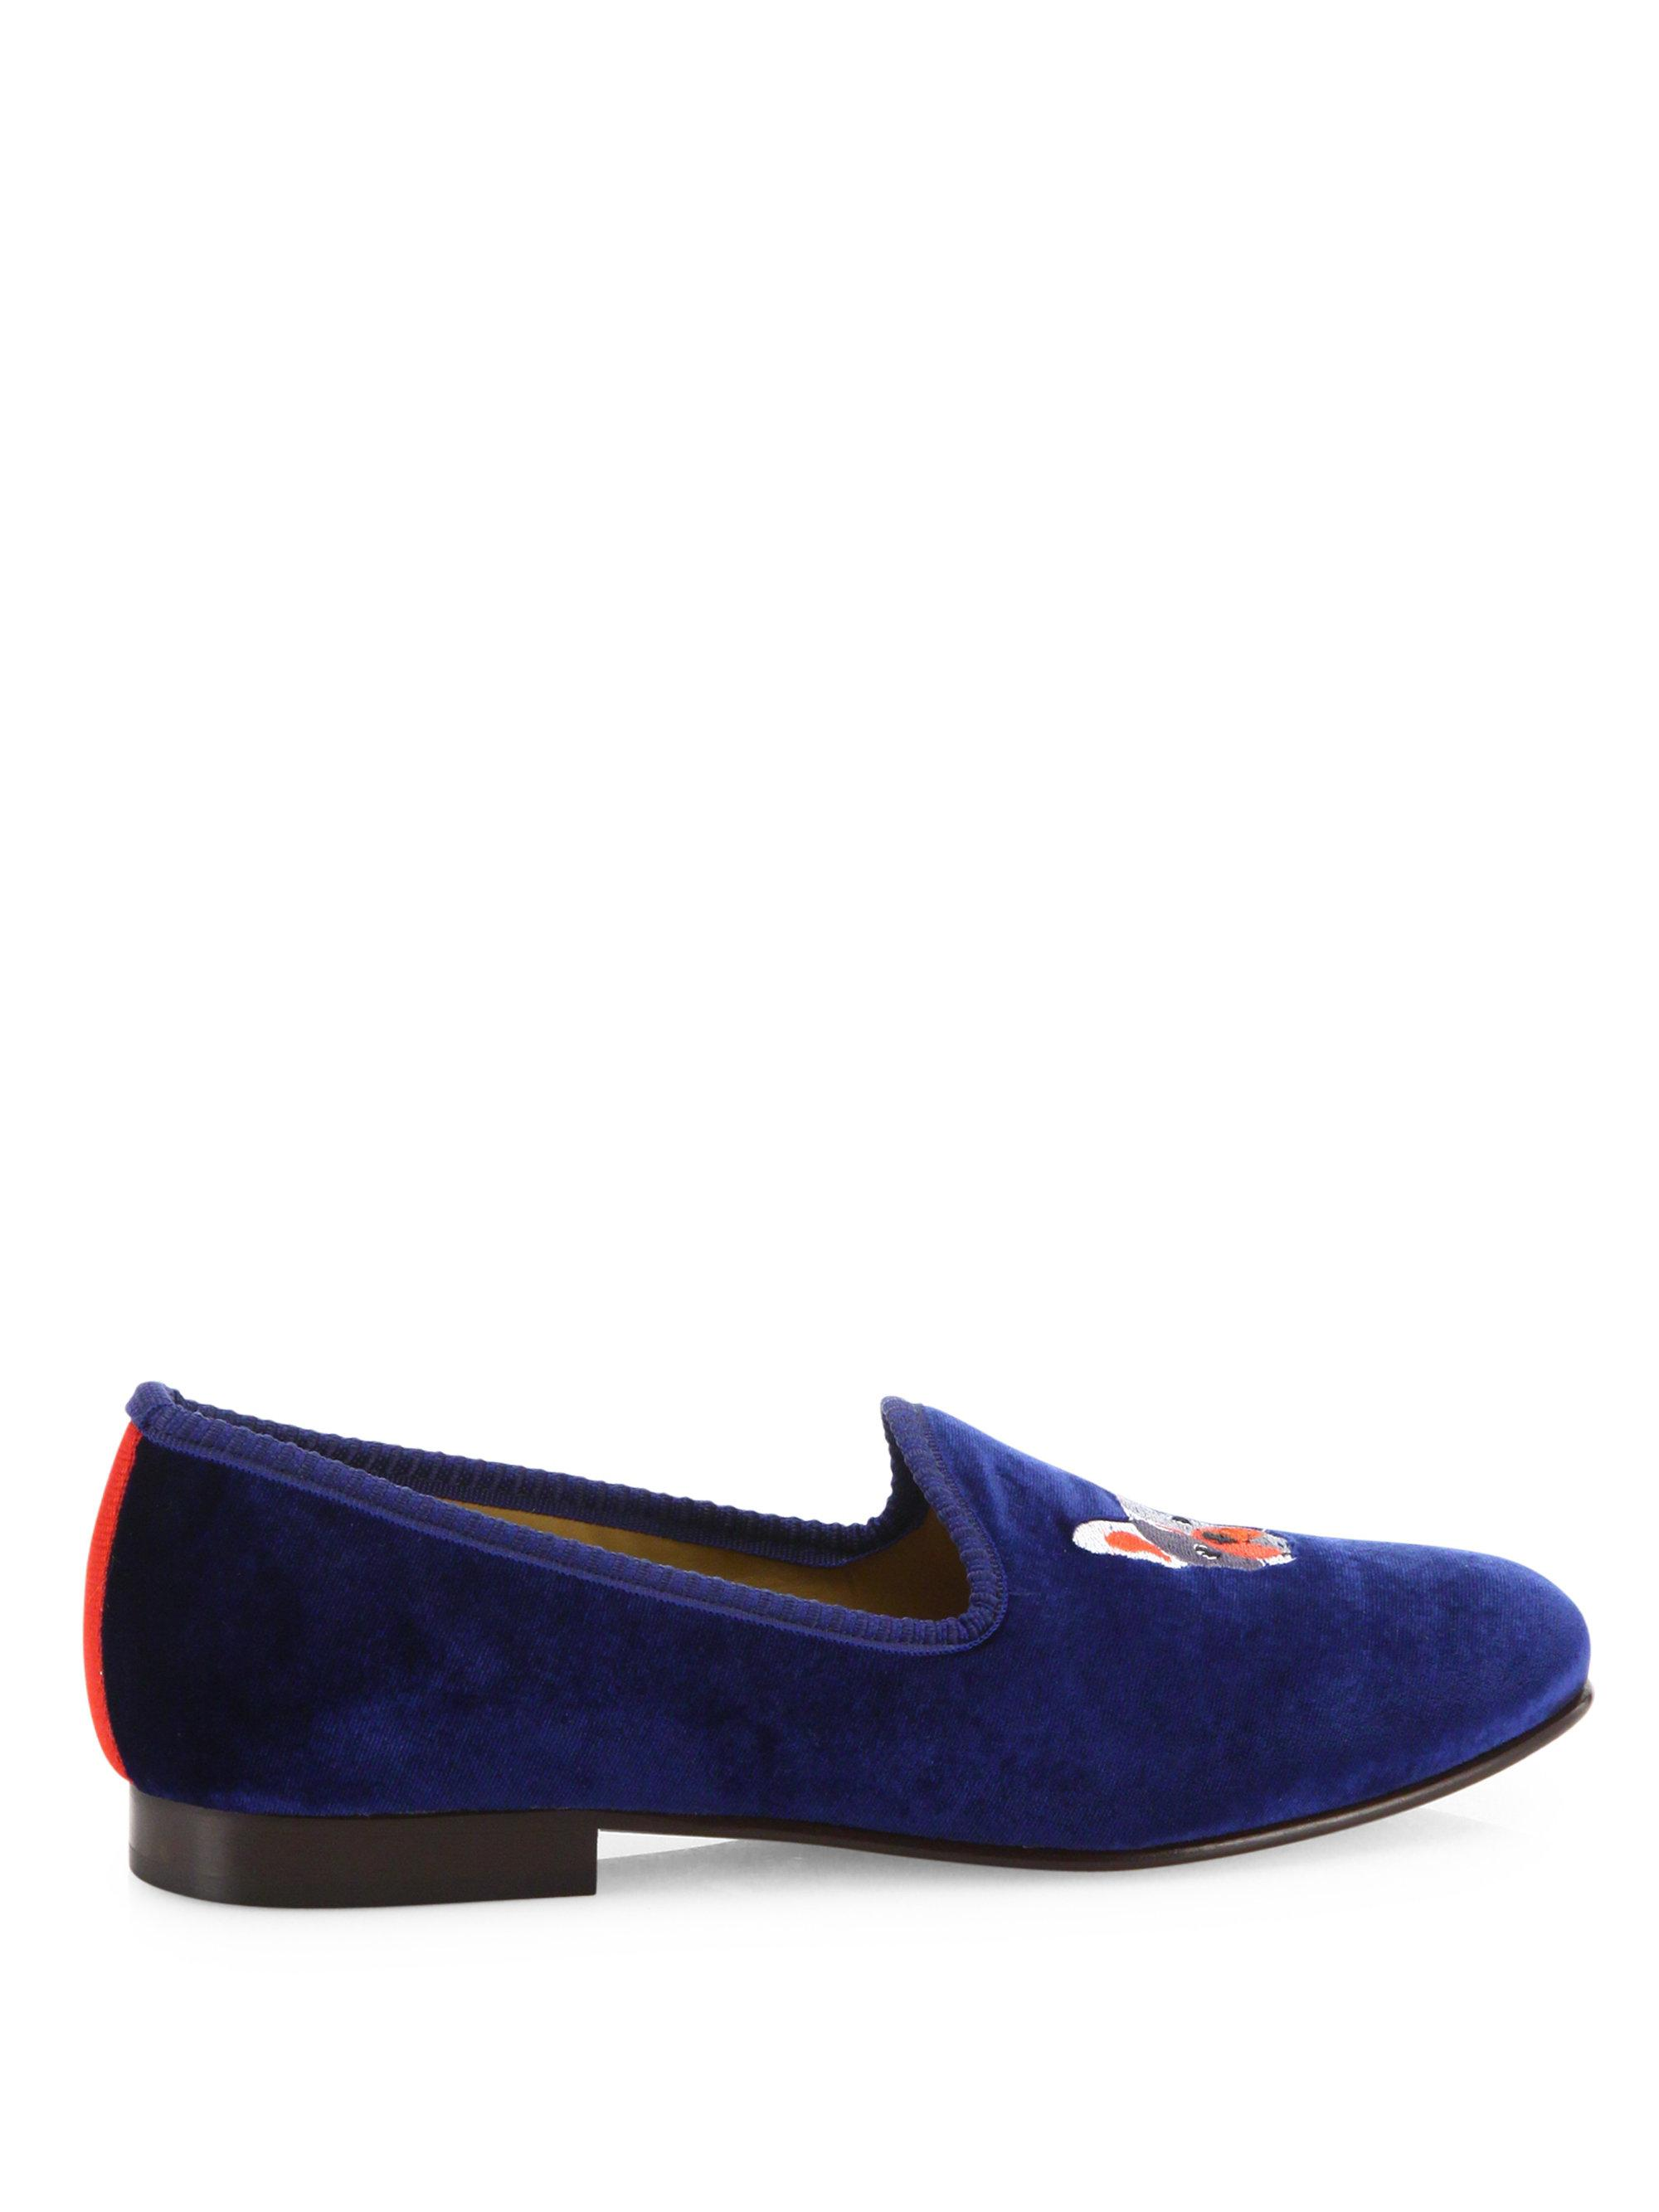 DEL TORO Lucky B$tch Velvet Smoking Loafers LXySVe